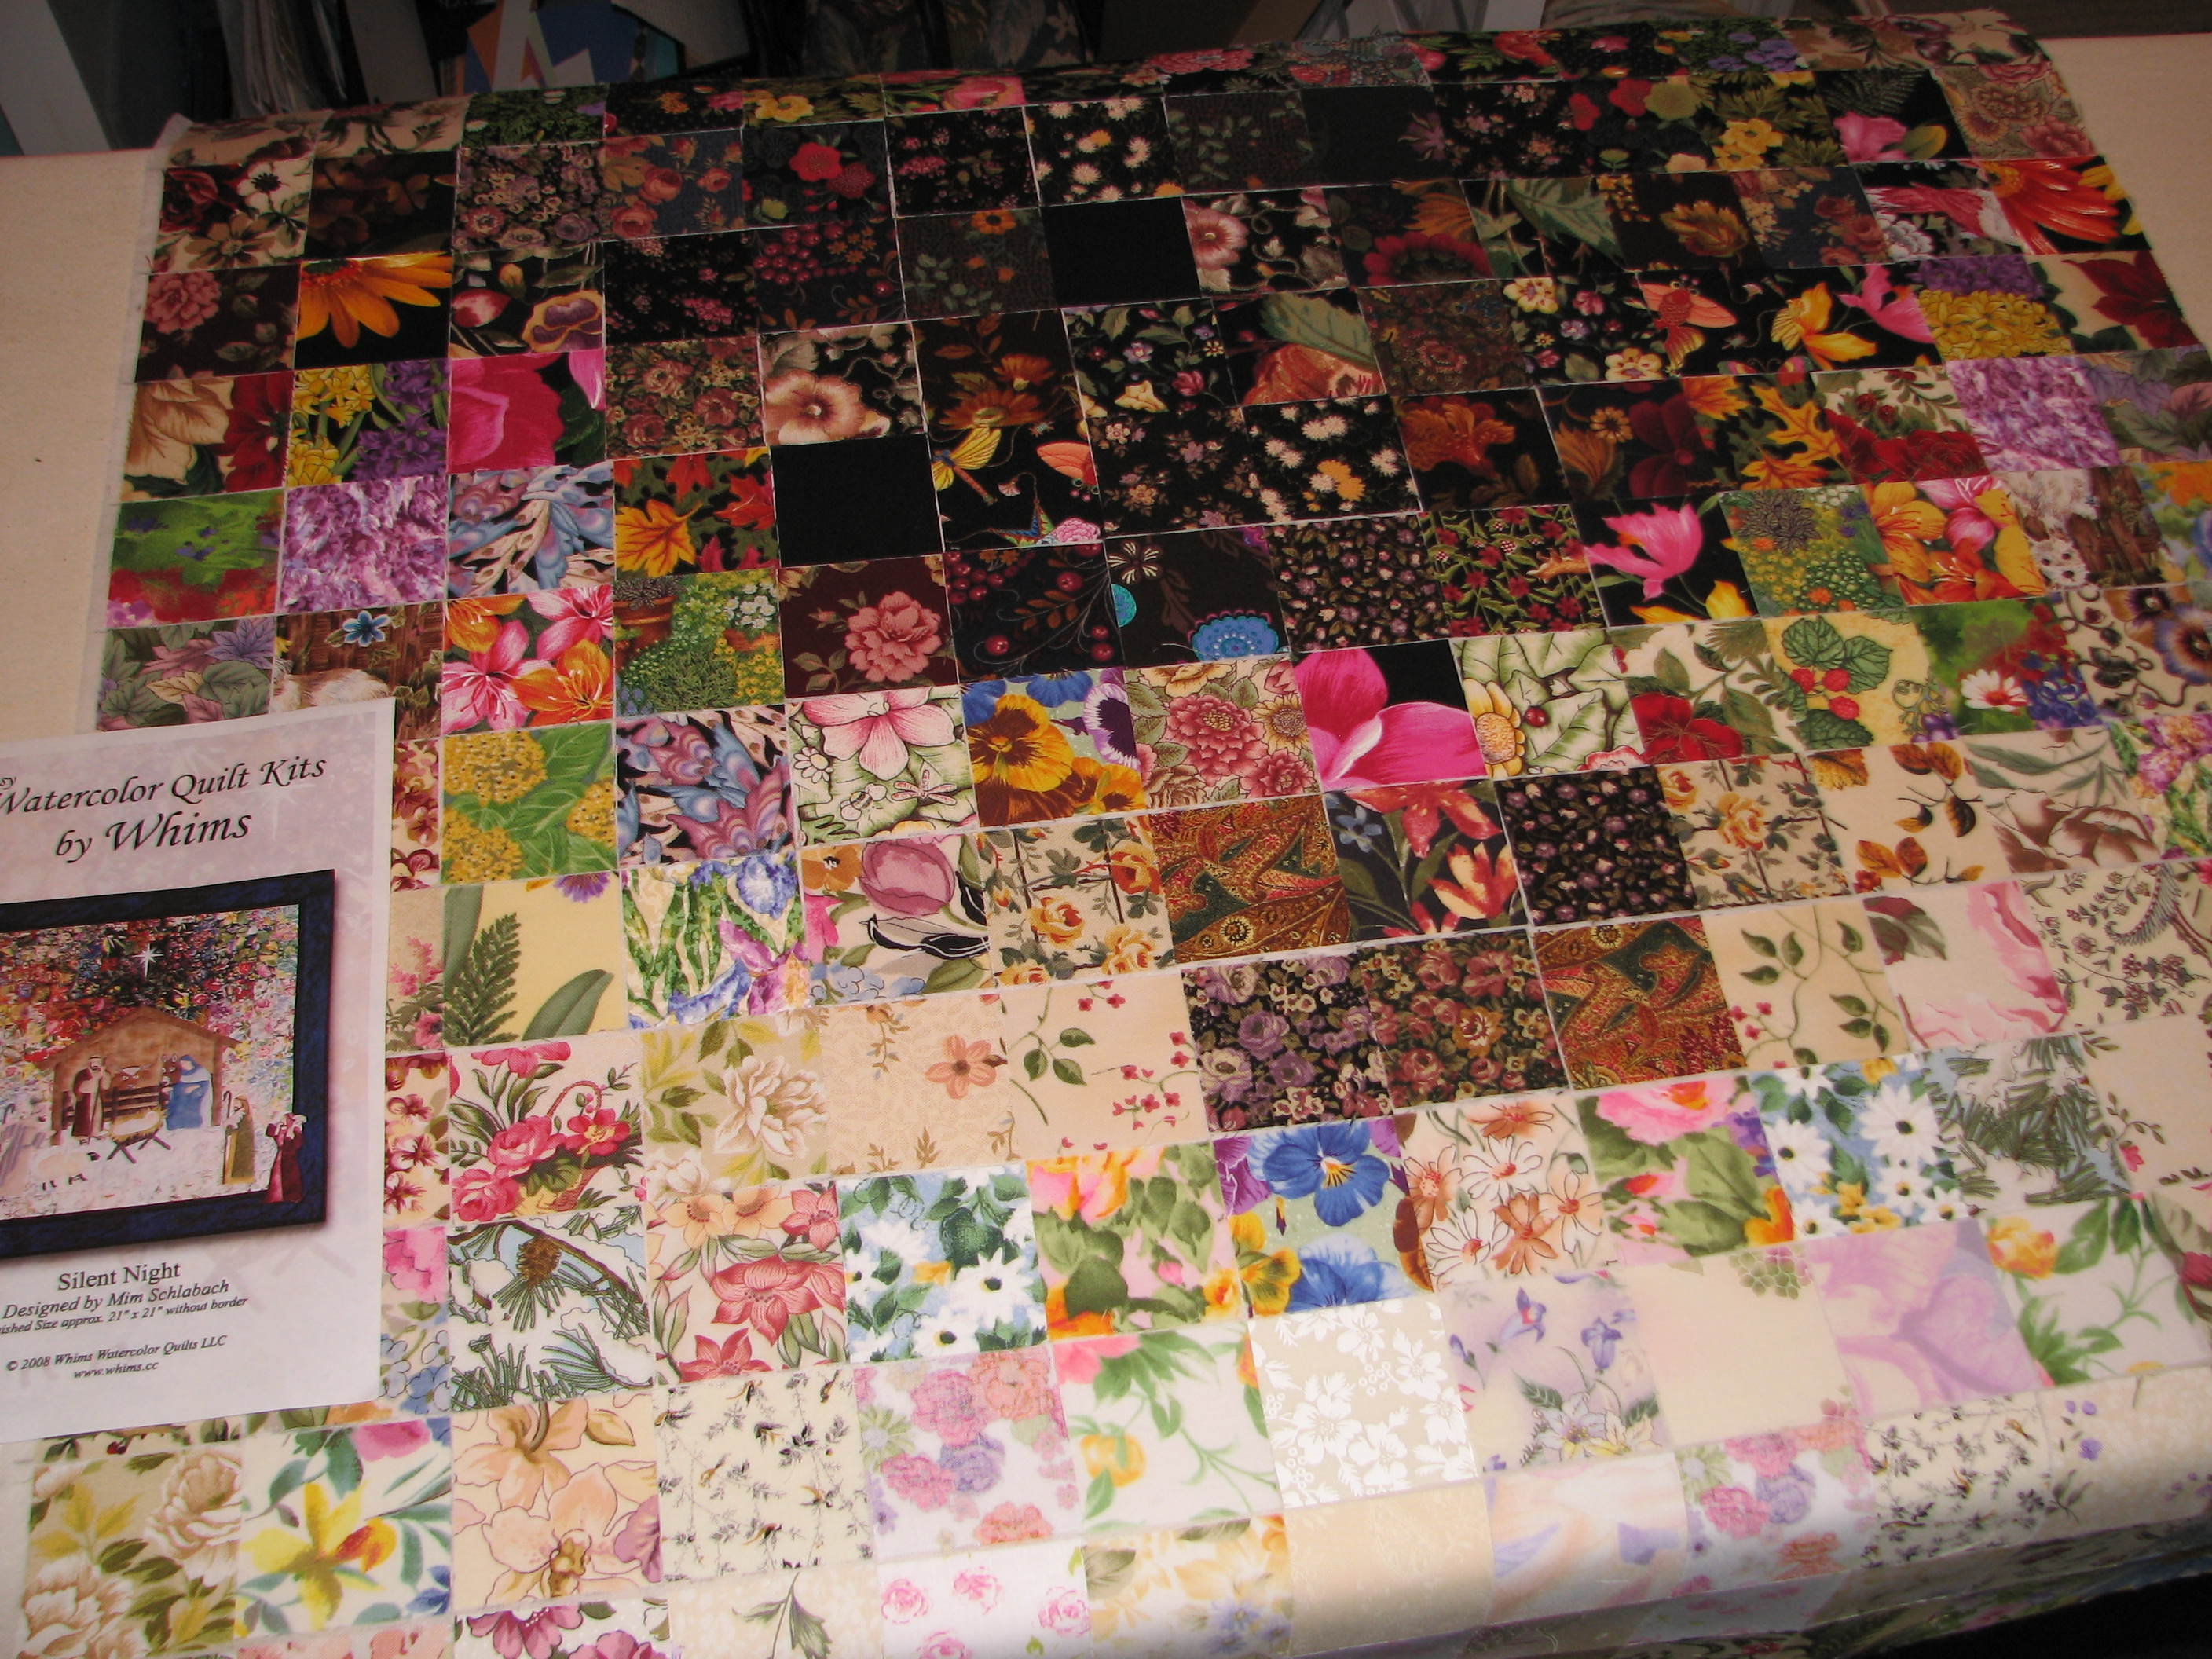 harms quilt barbara fiber art impressionist wildflower img quilts medow watercolor